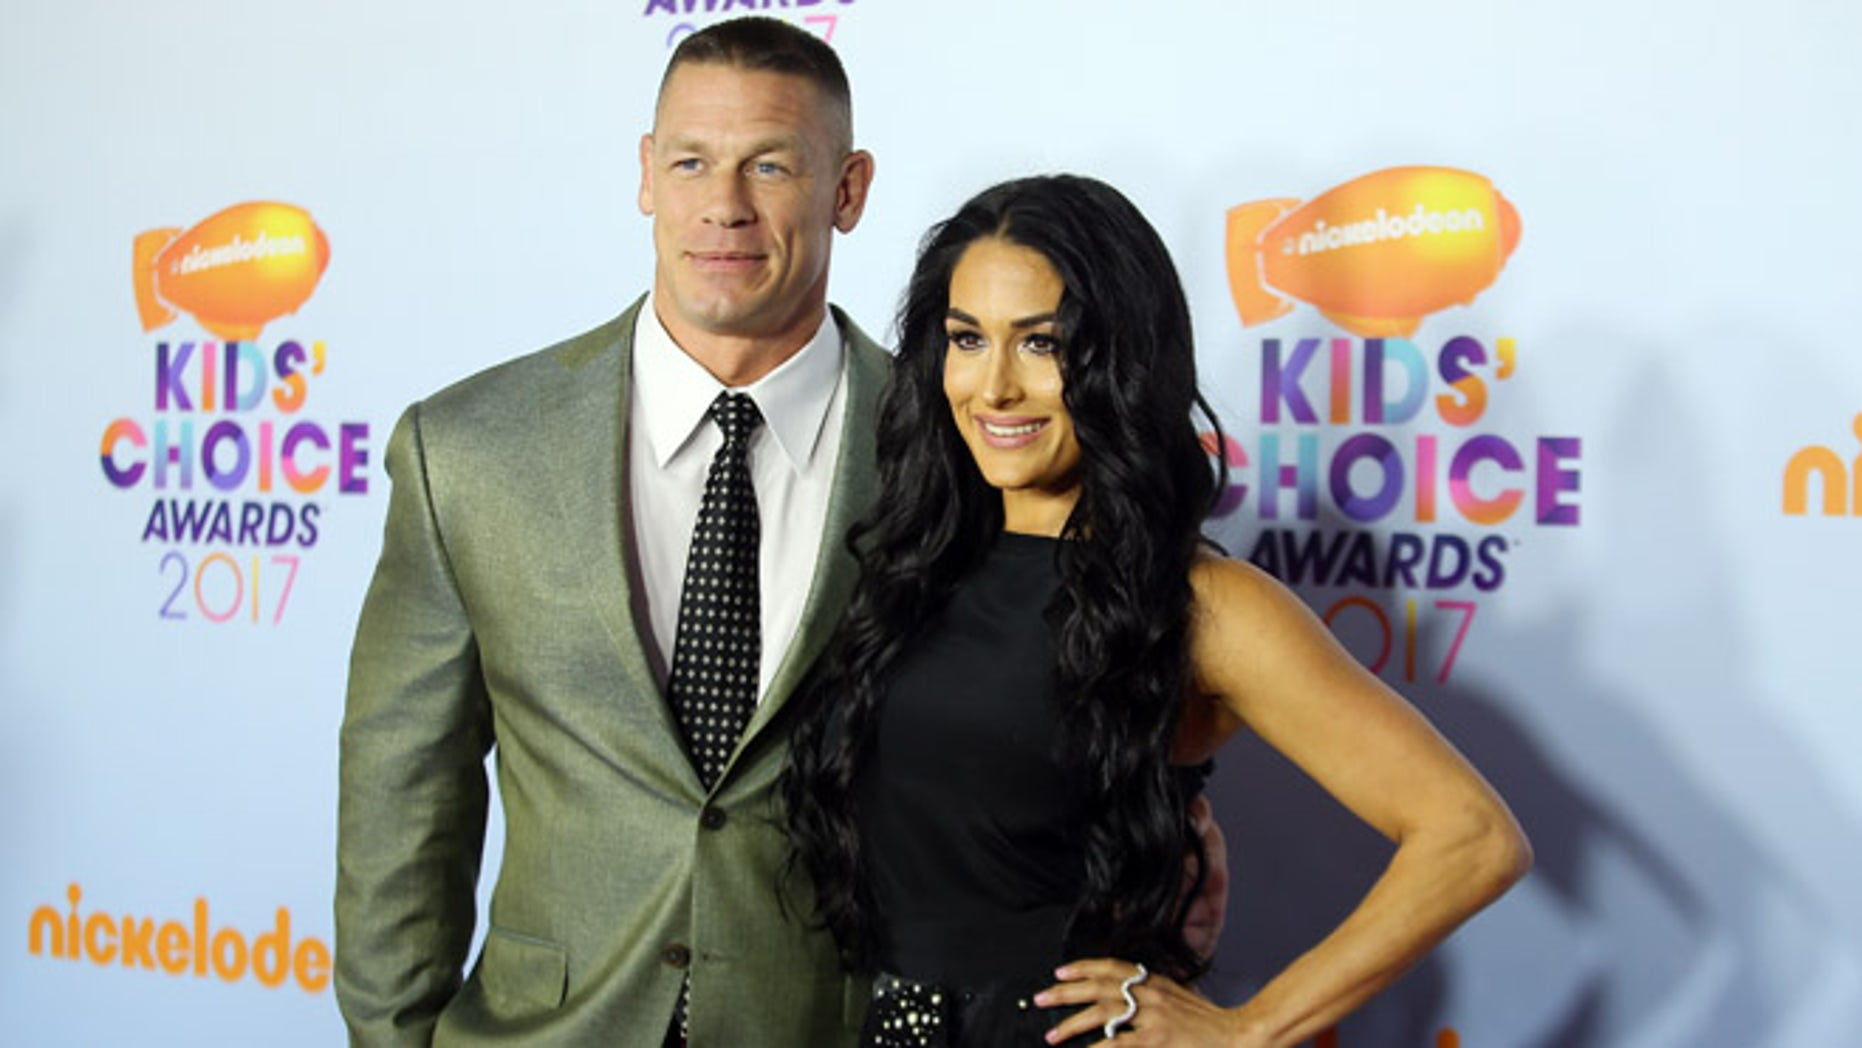 John Cena and Nikki Bella stripped down for a YouTube video.